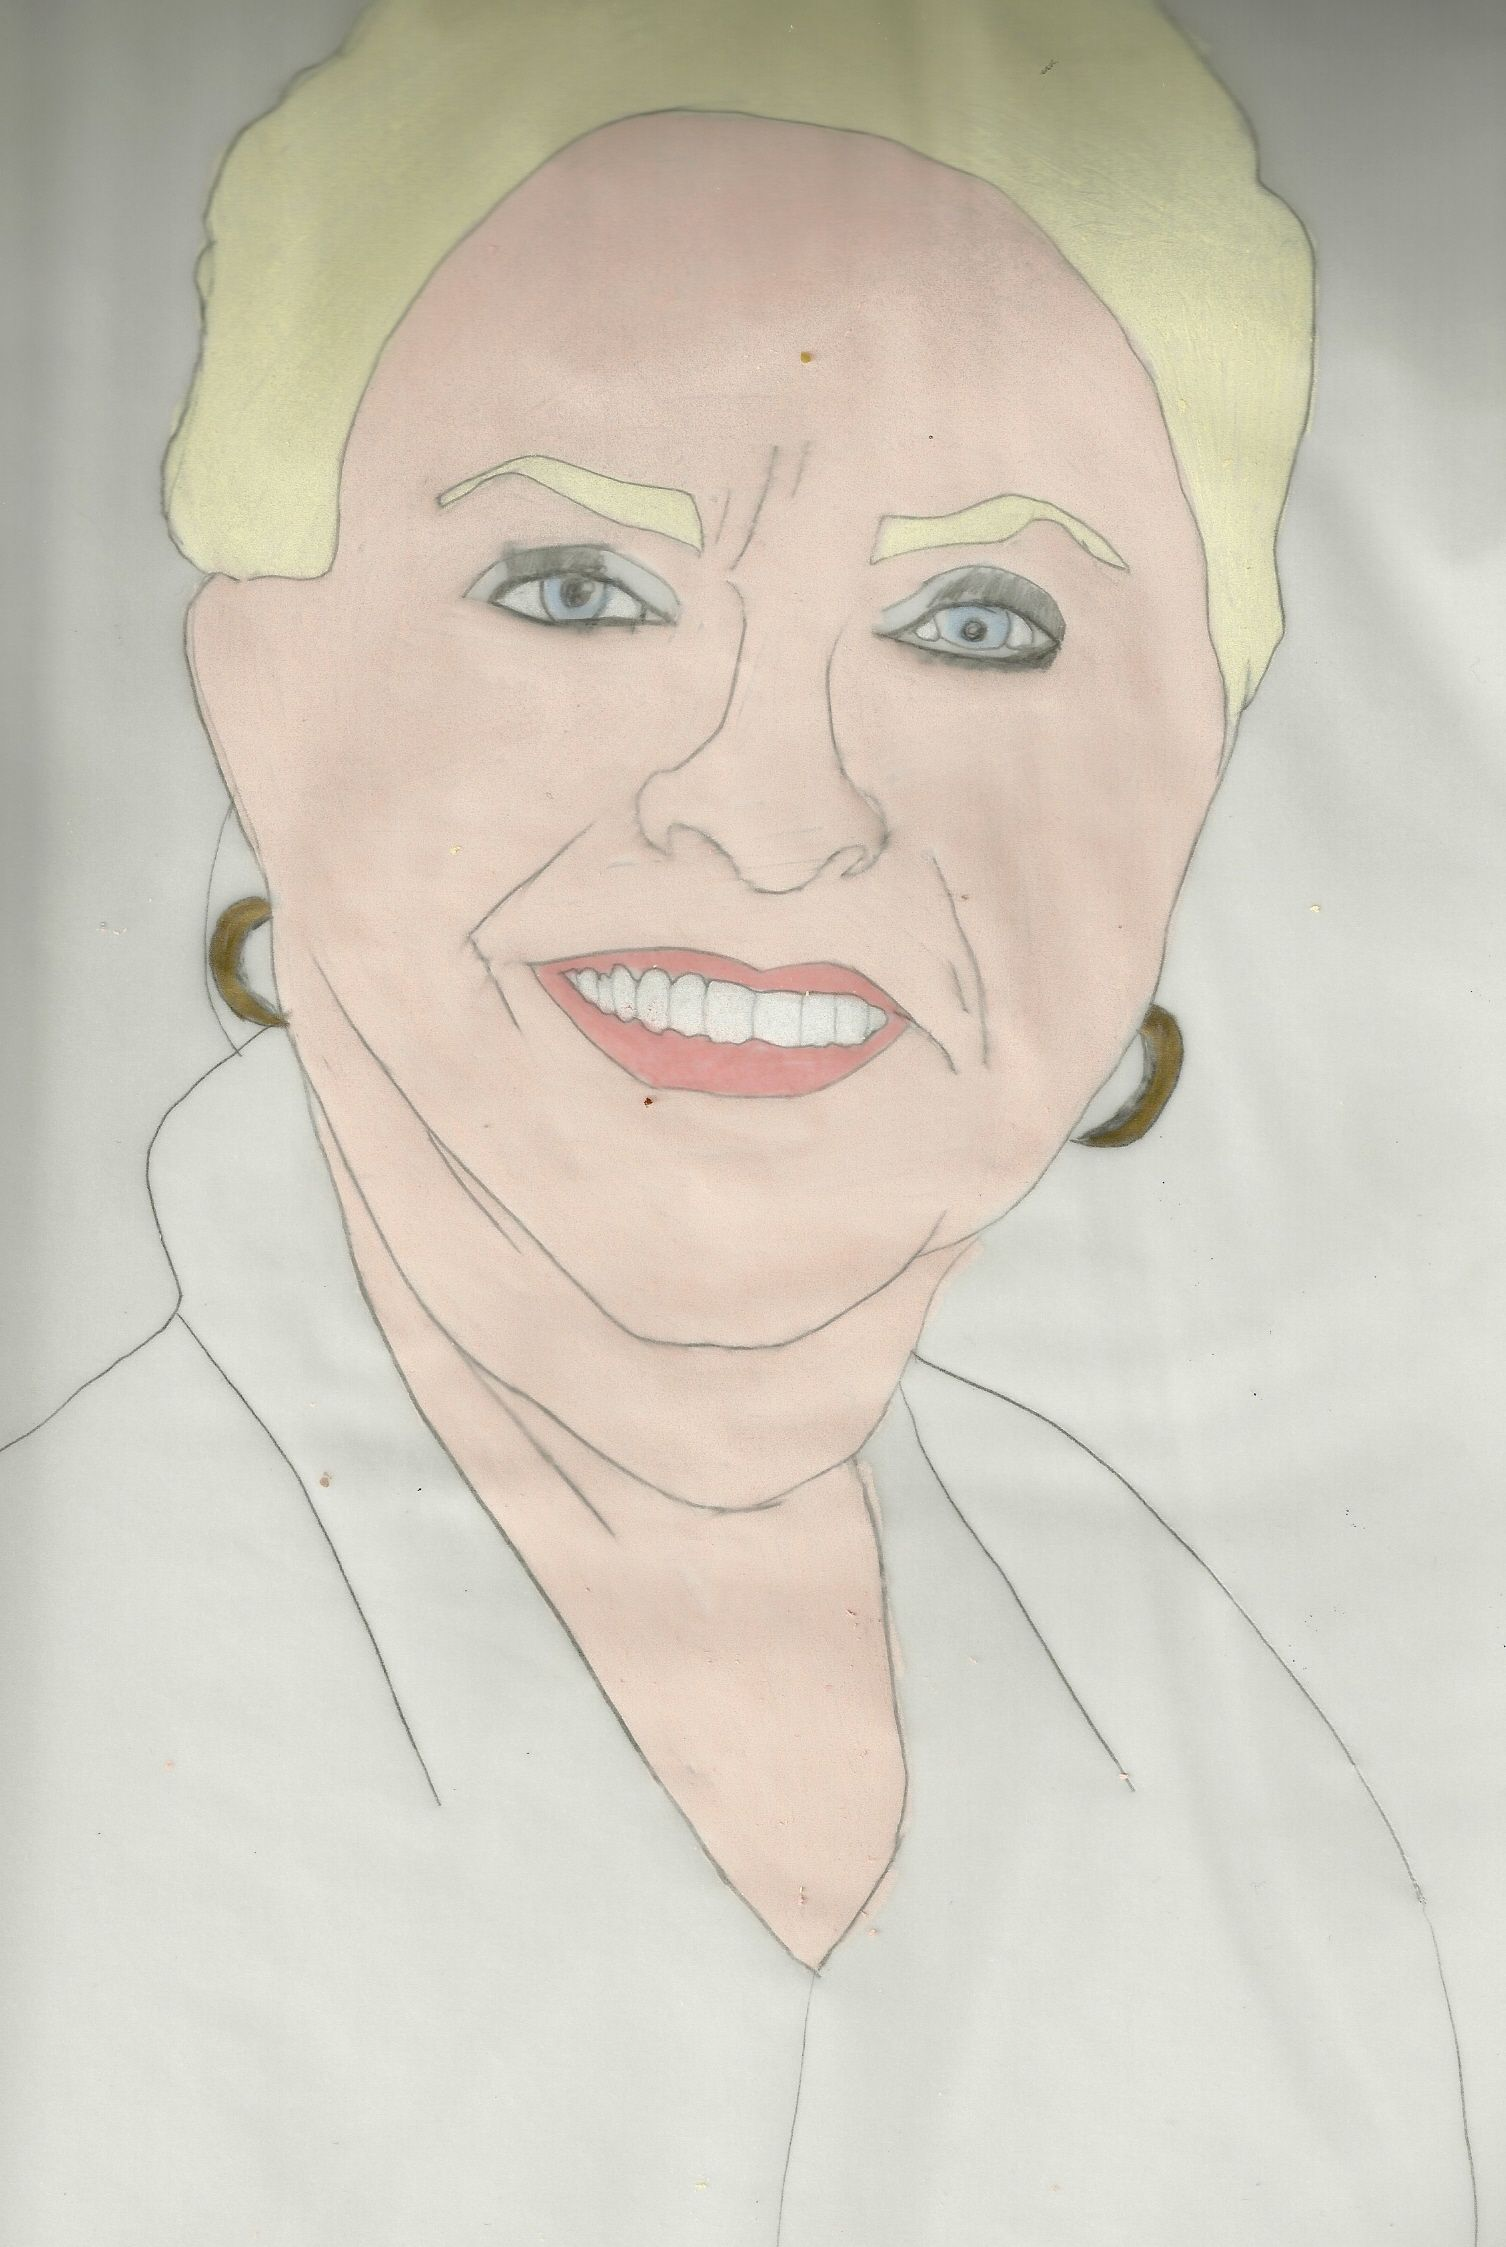 Stephanie AKA Susan Flannery Drawing done with prisma color Colored pencils and charcoal pencil